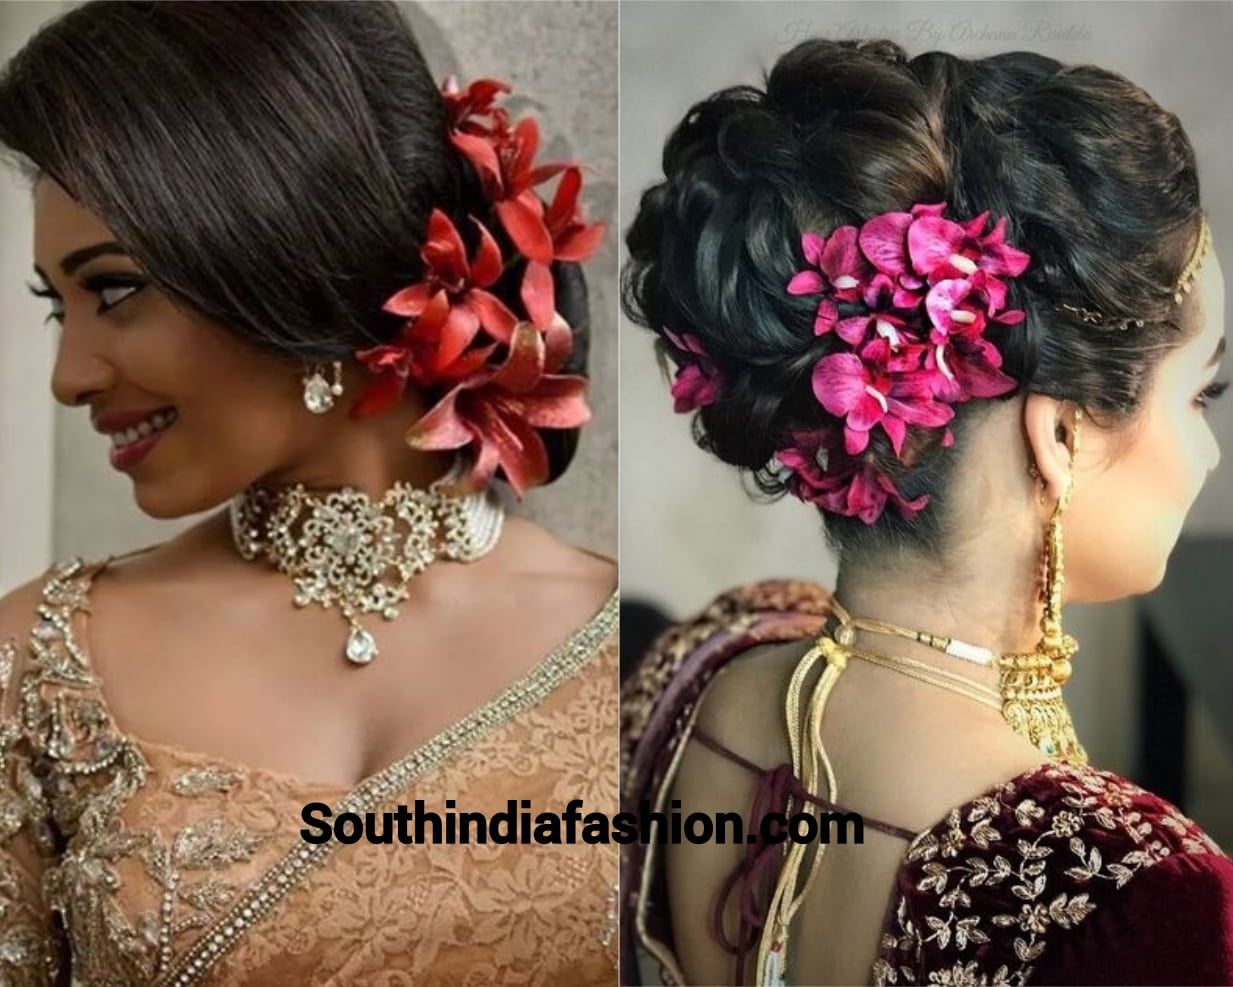 Indian Wedding Bun Hairstyle With Flowers And Gajra Wedding Bun Hairstyles Bun Hairstyles For Long Hair Bun Hairstyles